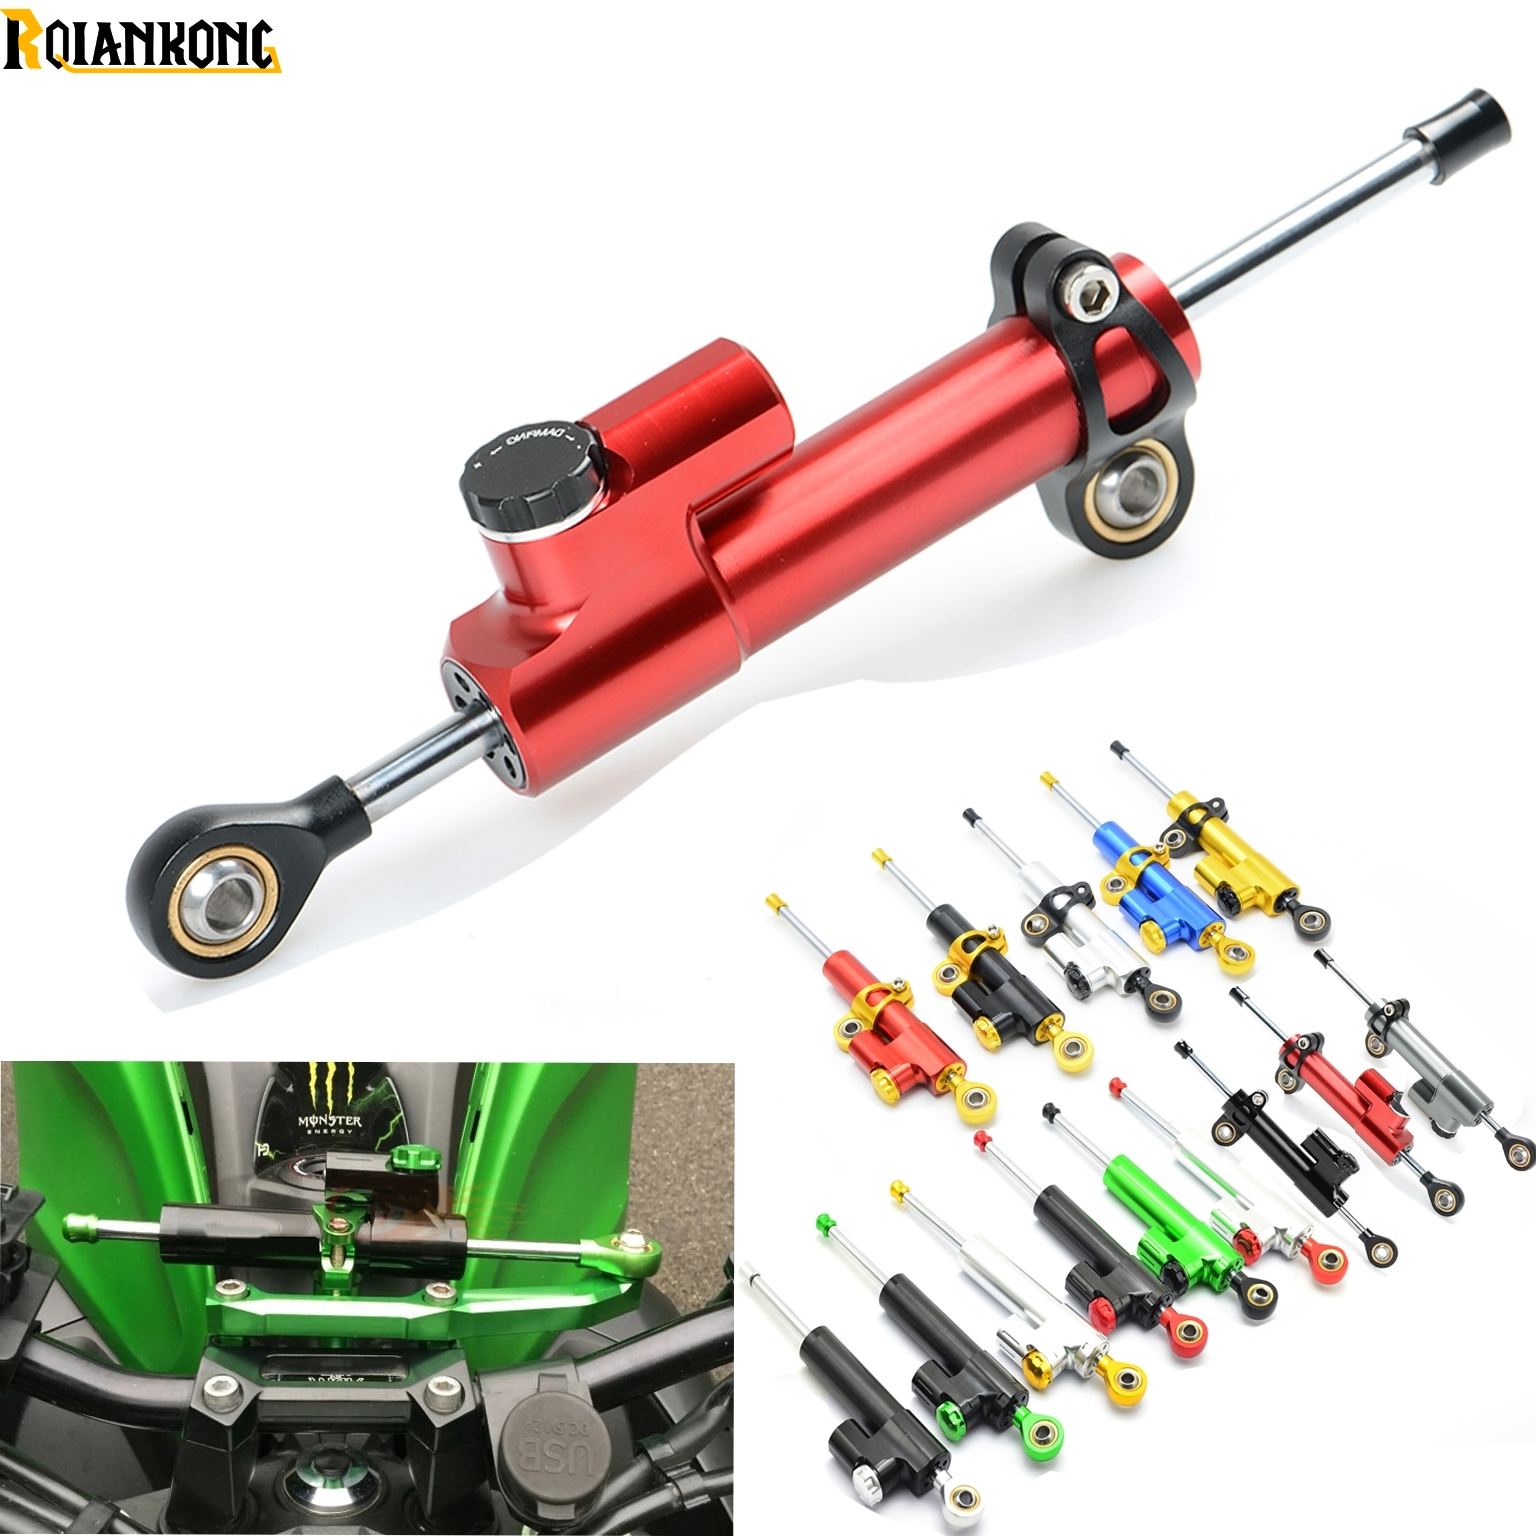 CNC Aluminum Motorcycle Steering Damper Stabilizer Linear Safe Control for Ducati MONSTER 400 620 695 696 796 821 1100 1200<br>